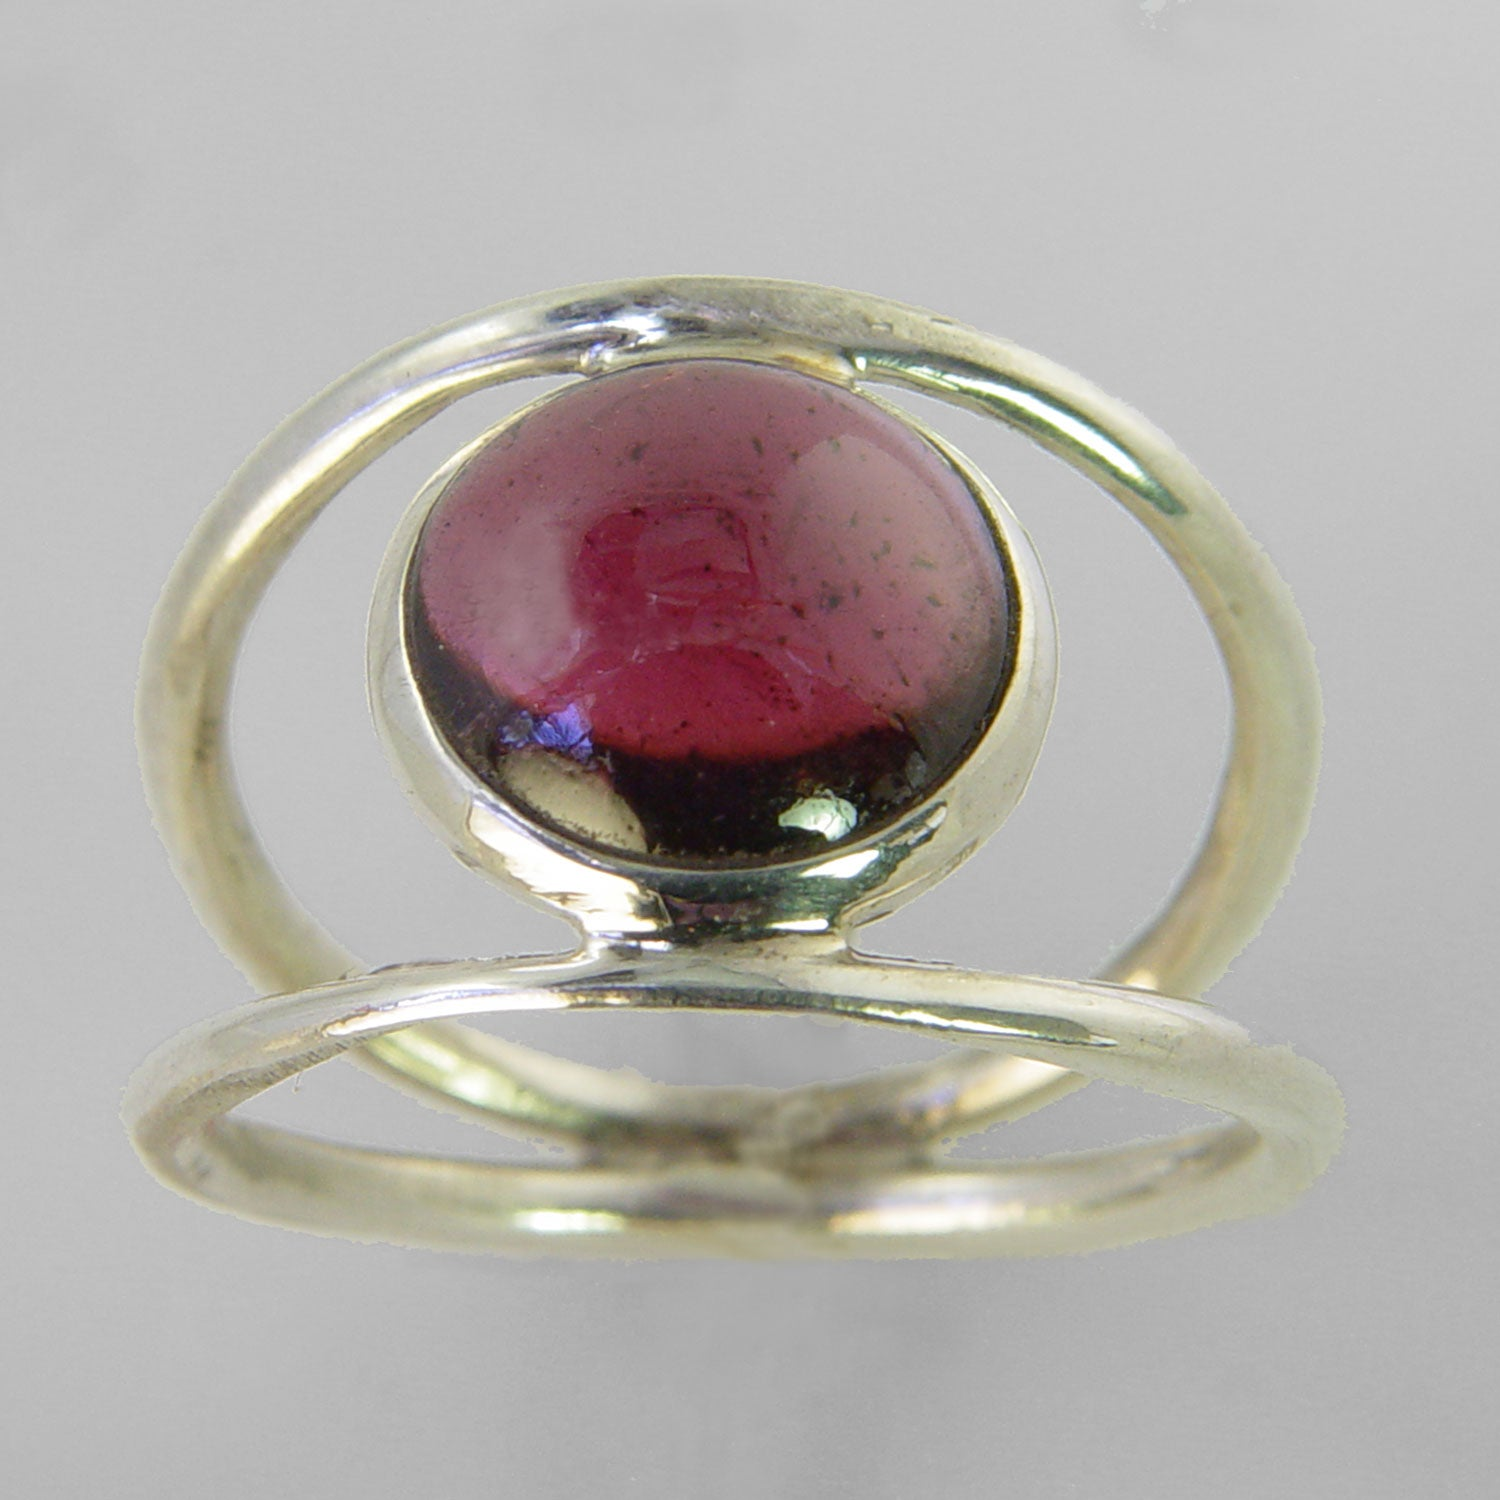 Garnet 3 ct Round Cab Sterling Silver Ring, Size 8